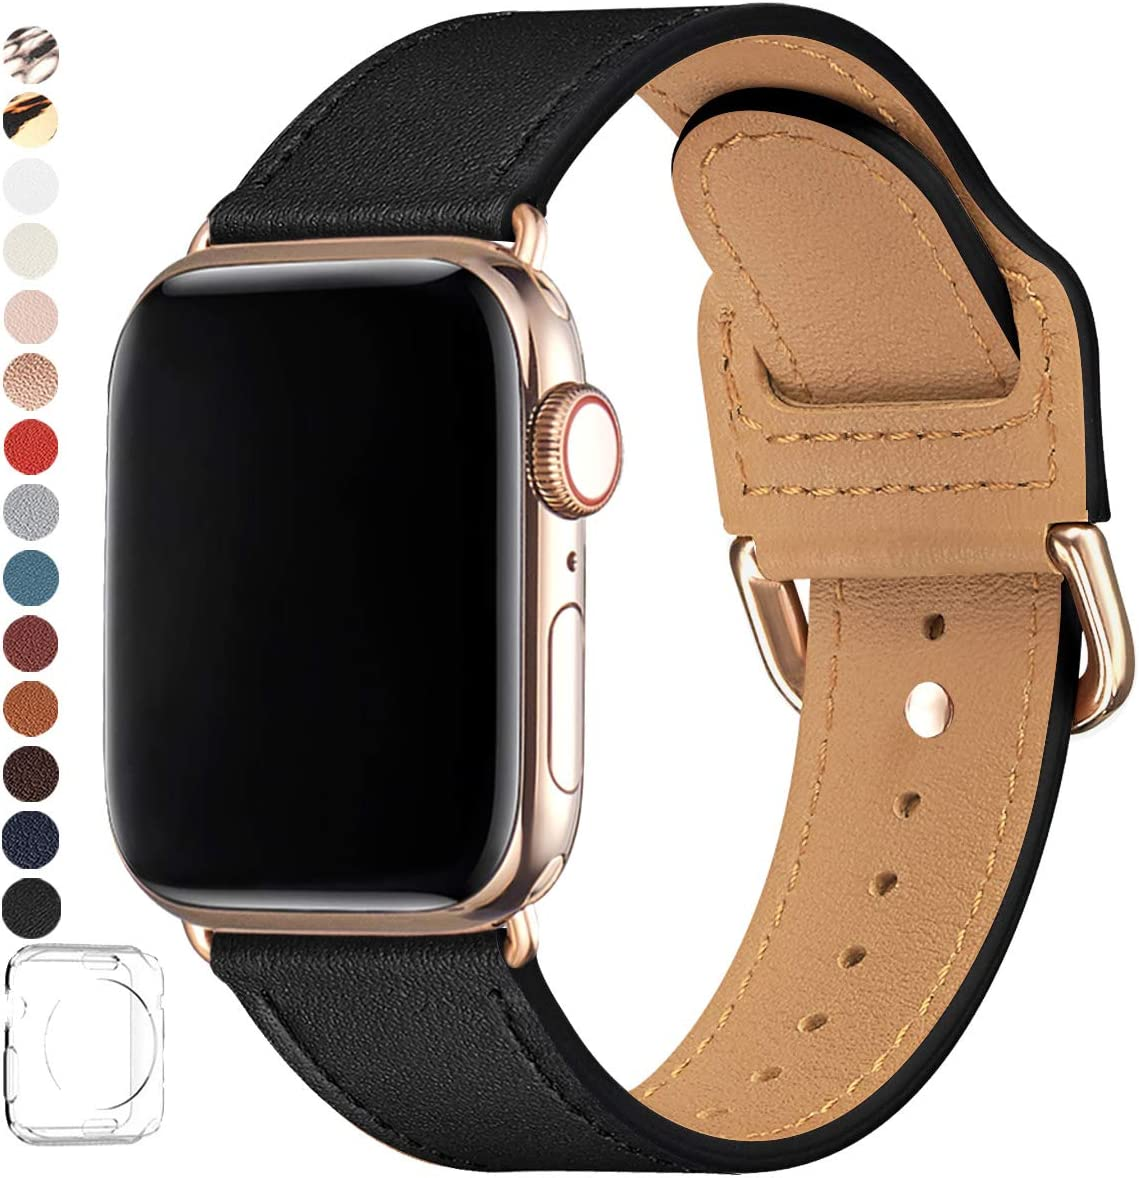 POWER PRIMACY Bands Compatible with Apple Watch Band 38mm 40mm 42mm 44mm, Top Grain Leather Smart Watch Strap Compatible for Men Women iWatch Series 6 5 4 3 2 1,SE (Black/Gold, 42mm/44mm)